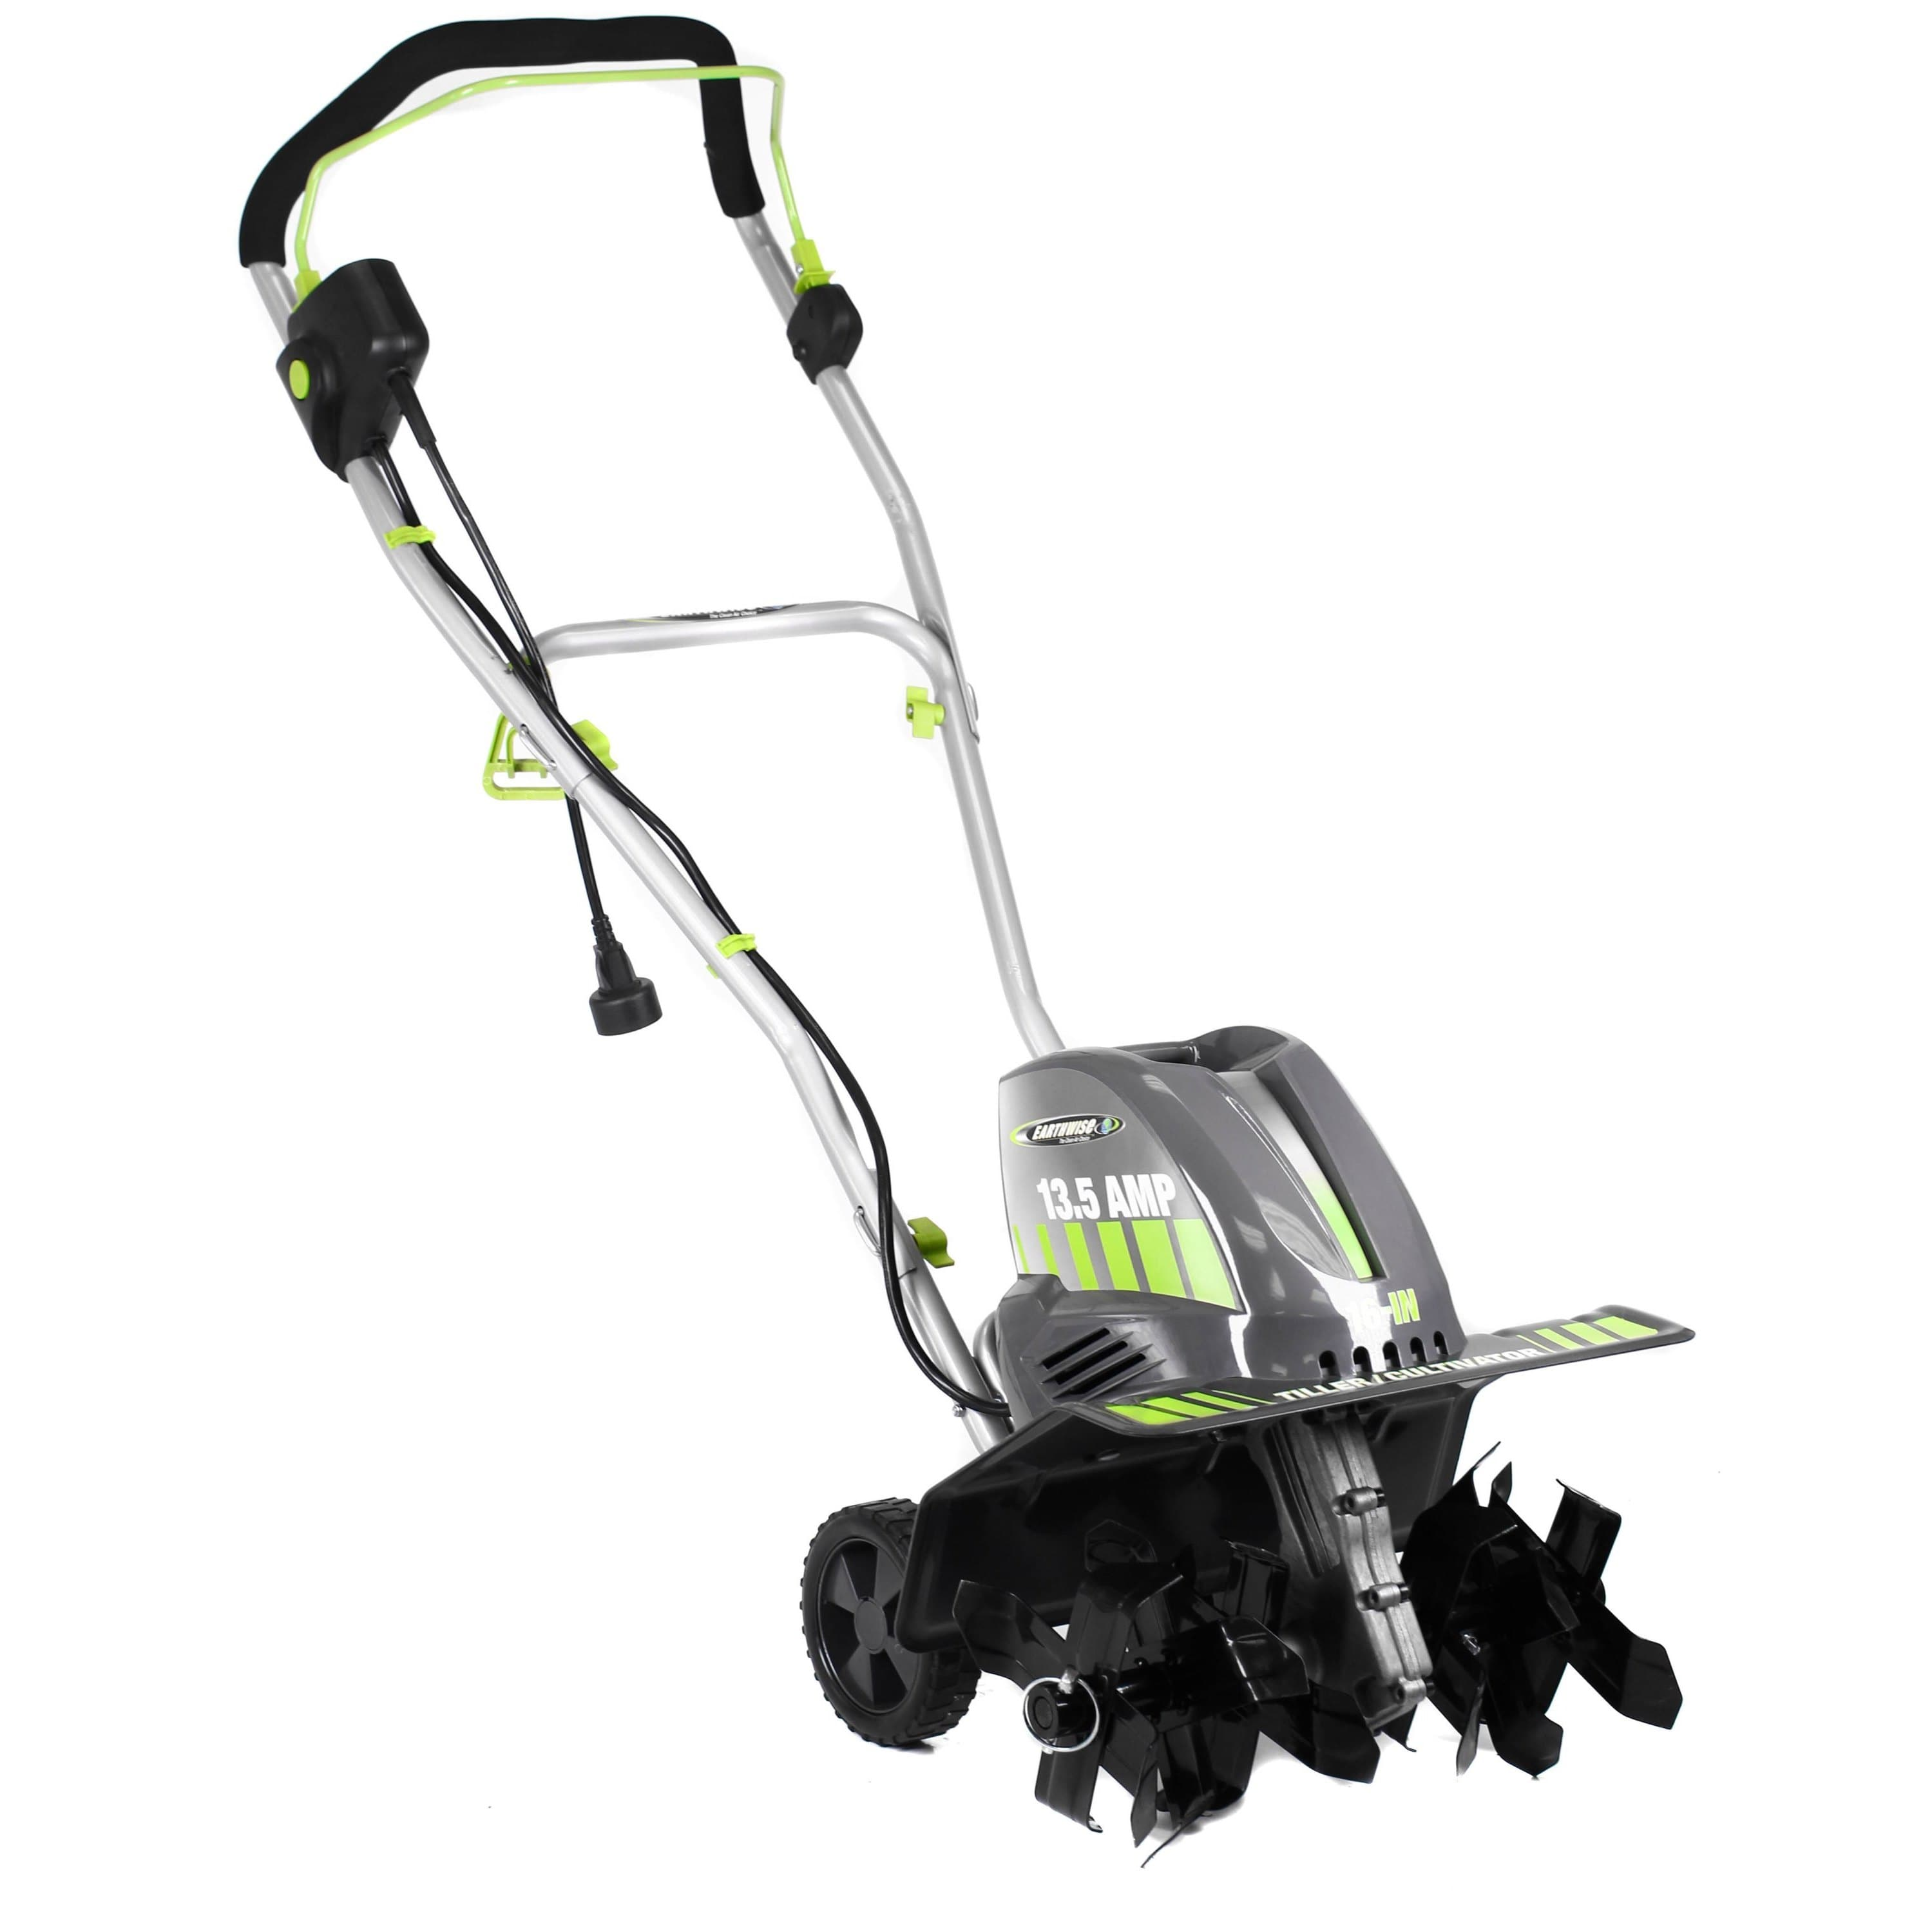 """Earthwise TC70016 16"""" 13.5 Amp Corded Electric Tiller/Cultivator with 6 Adjustable Tines"""